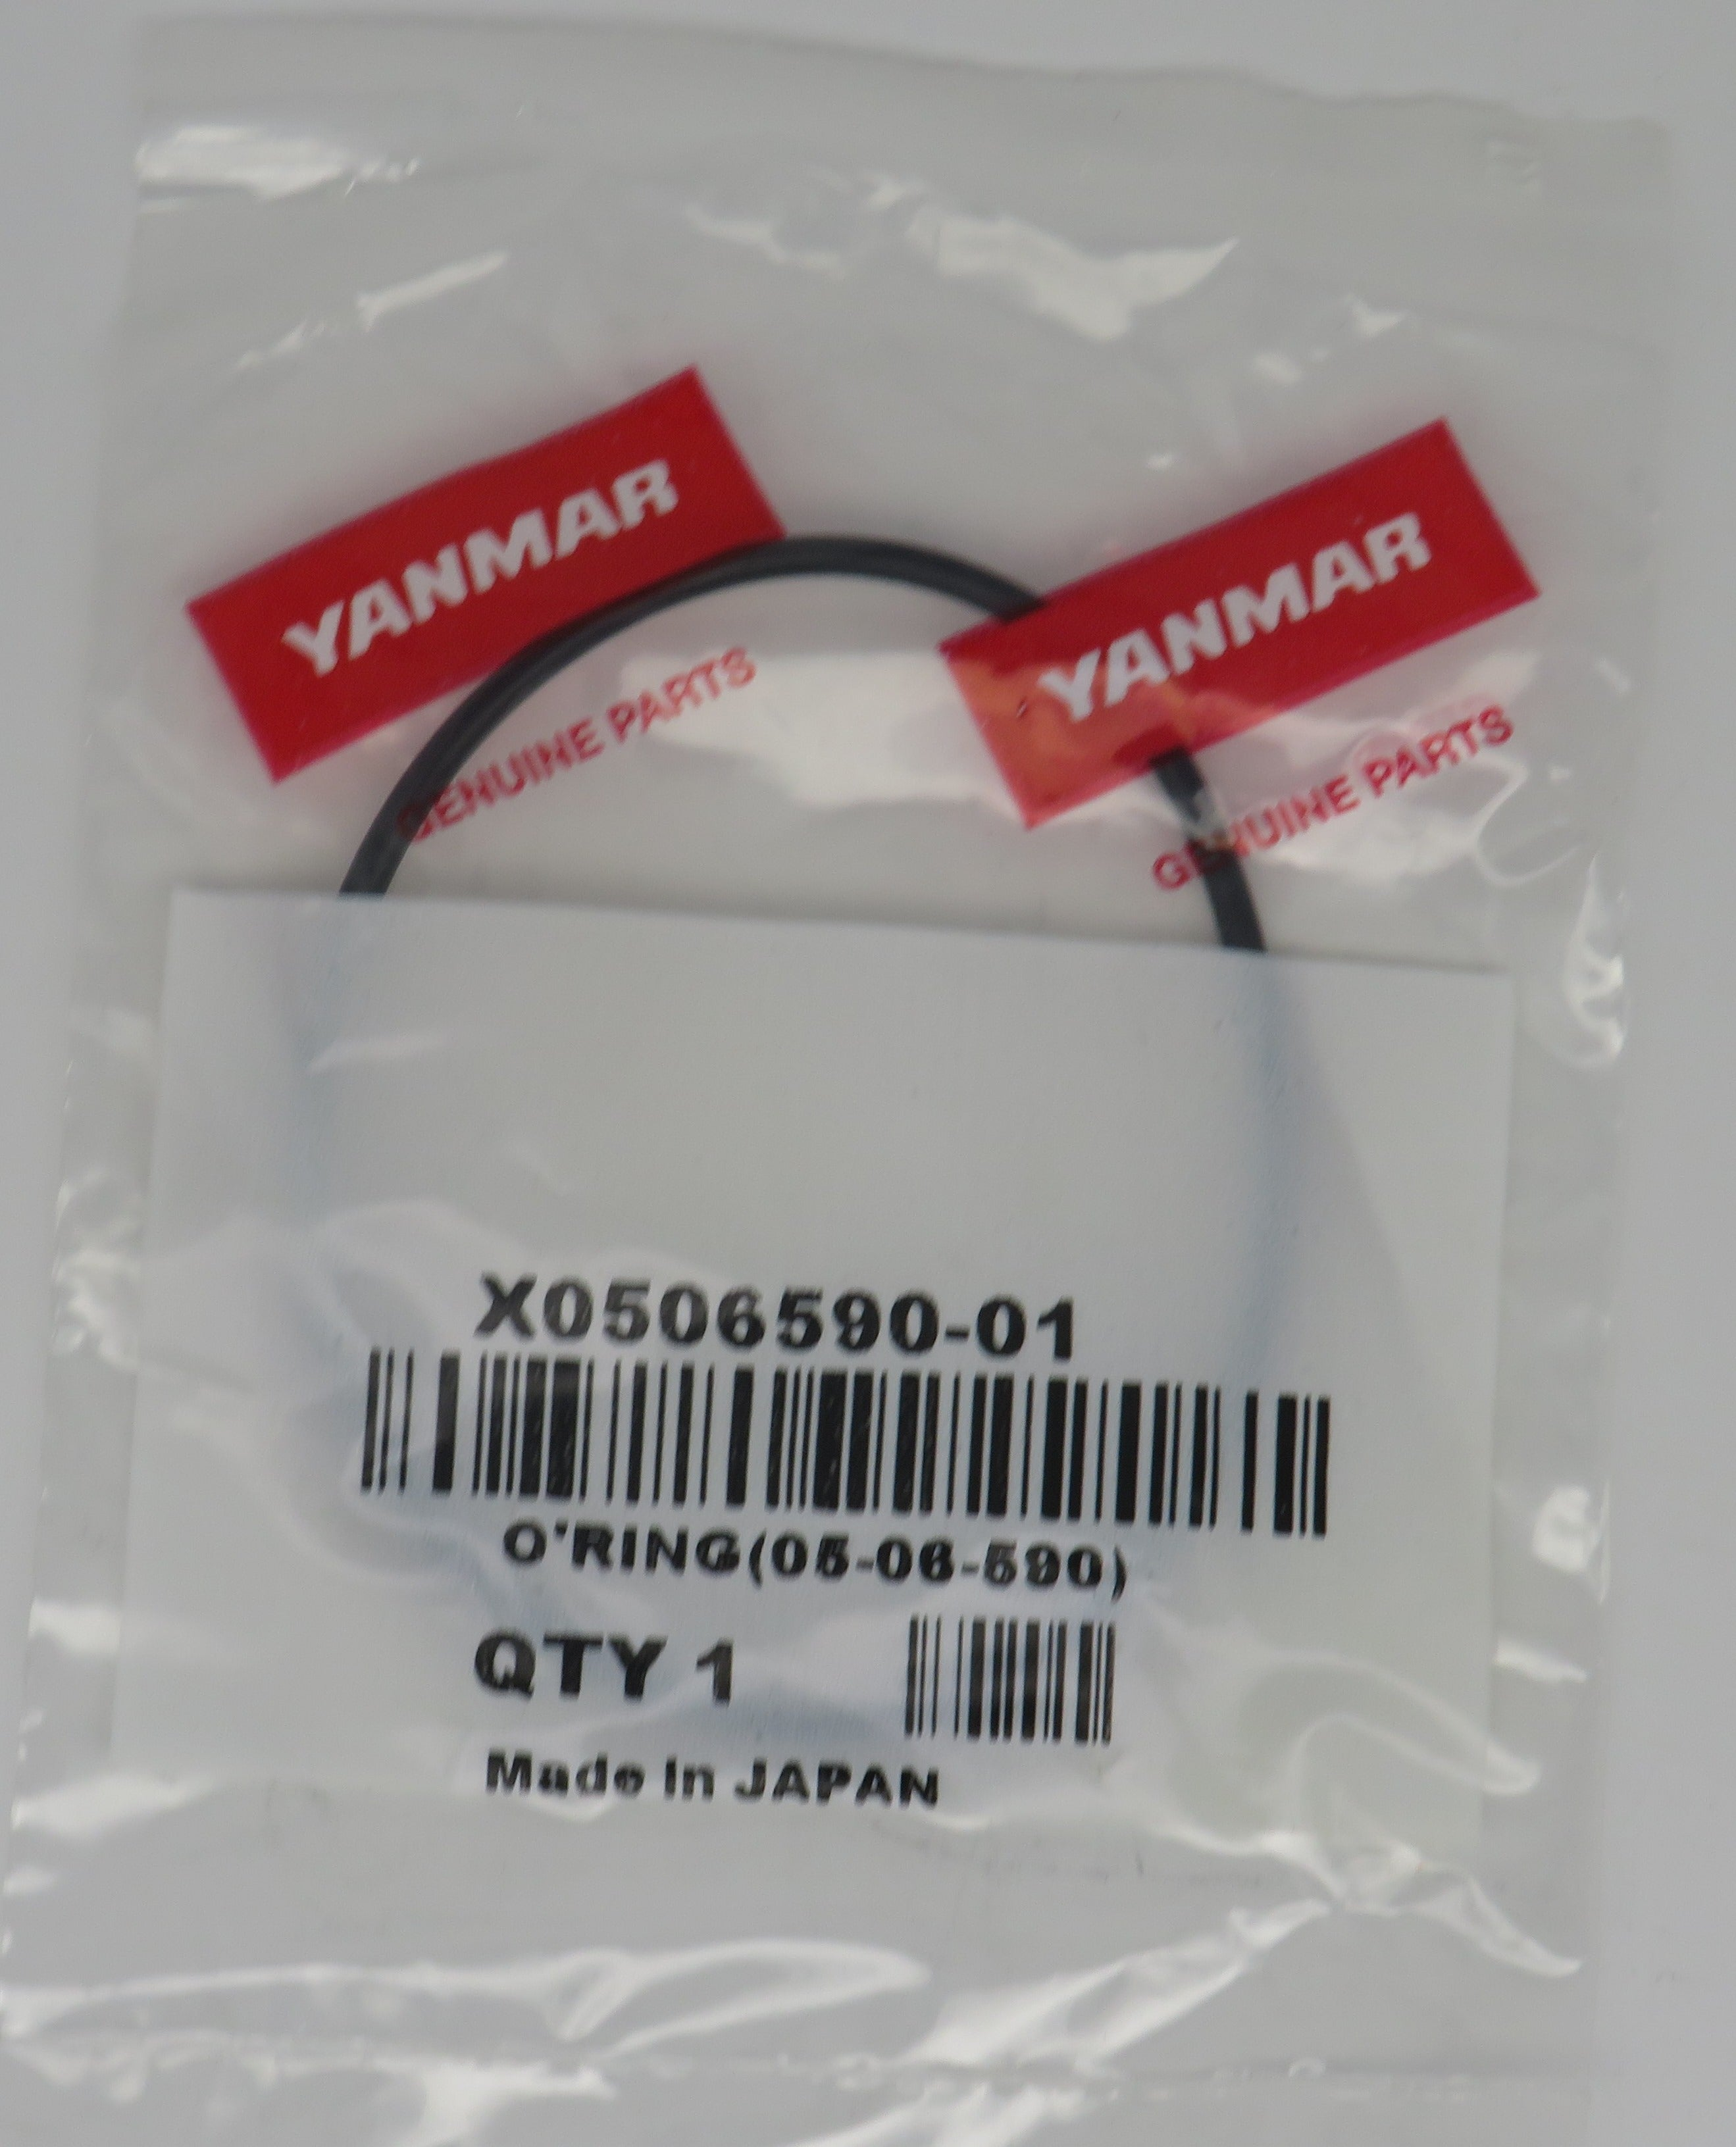 X0506590-01 Yanmar O-Ring (05-06-590) 6LP Raw Water Pump Cover (Superceded 119773-42570)